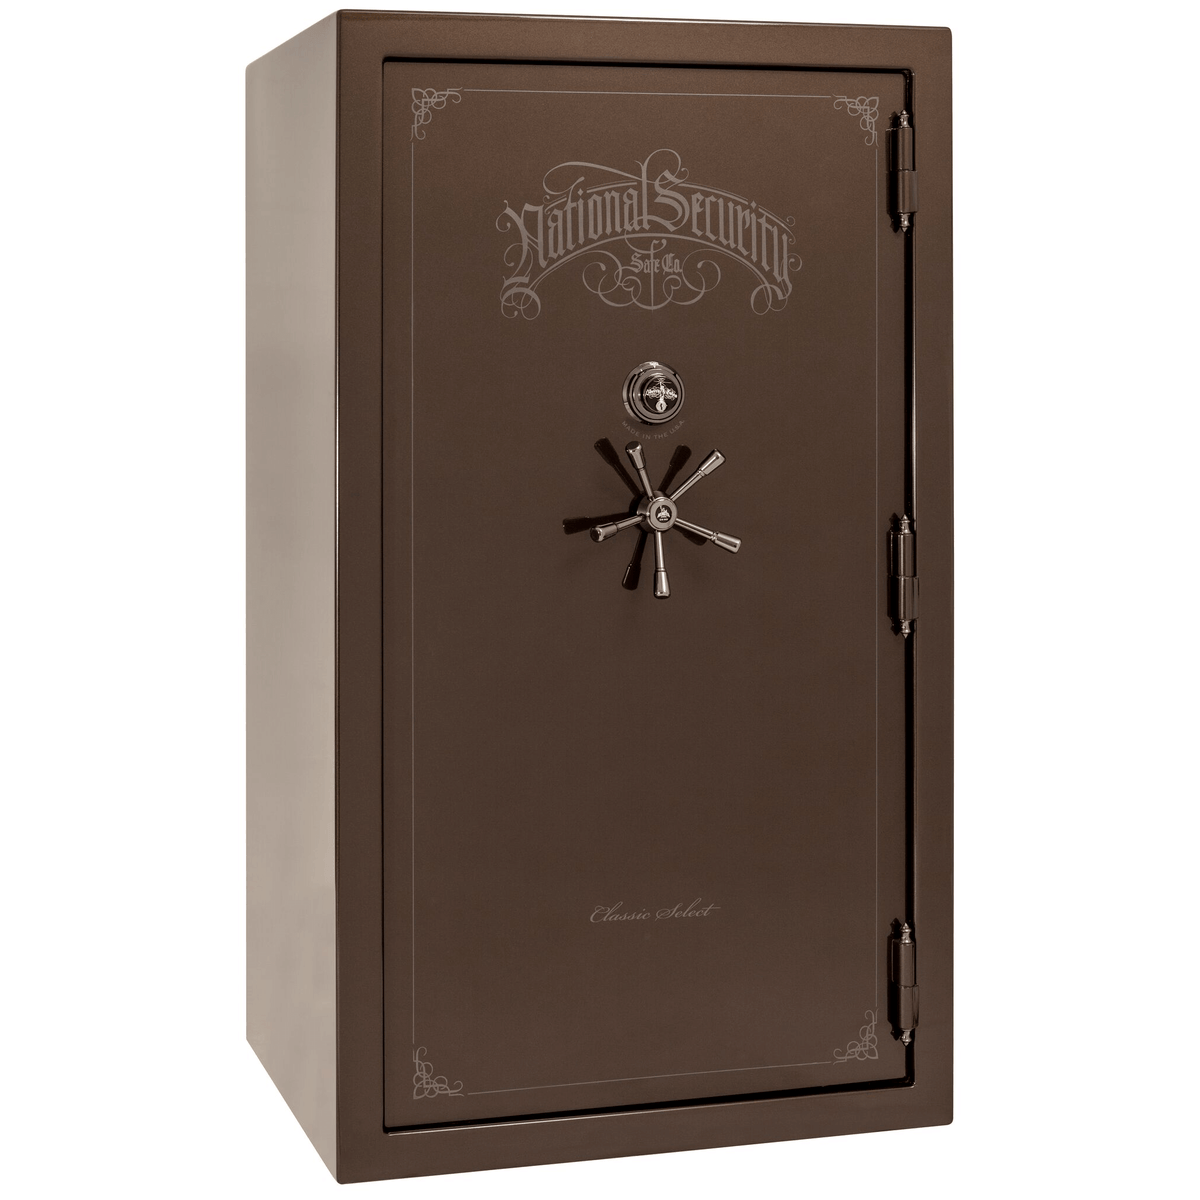 "Classic Select | 50 | Level 6 Security | 90 Minute Fire Protection | Bronze Gloss | Black Mechanical Lock | 72.5""(H) x 42""(W) x 32""(D)"